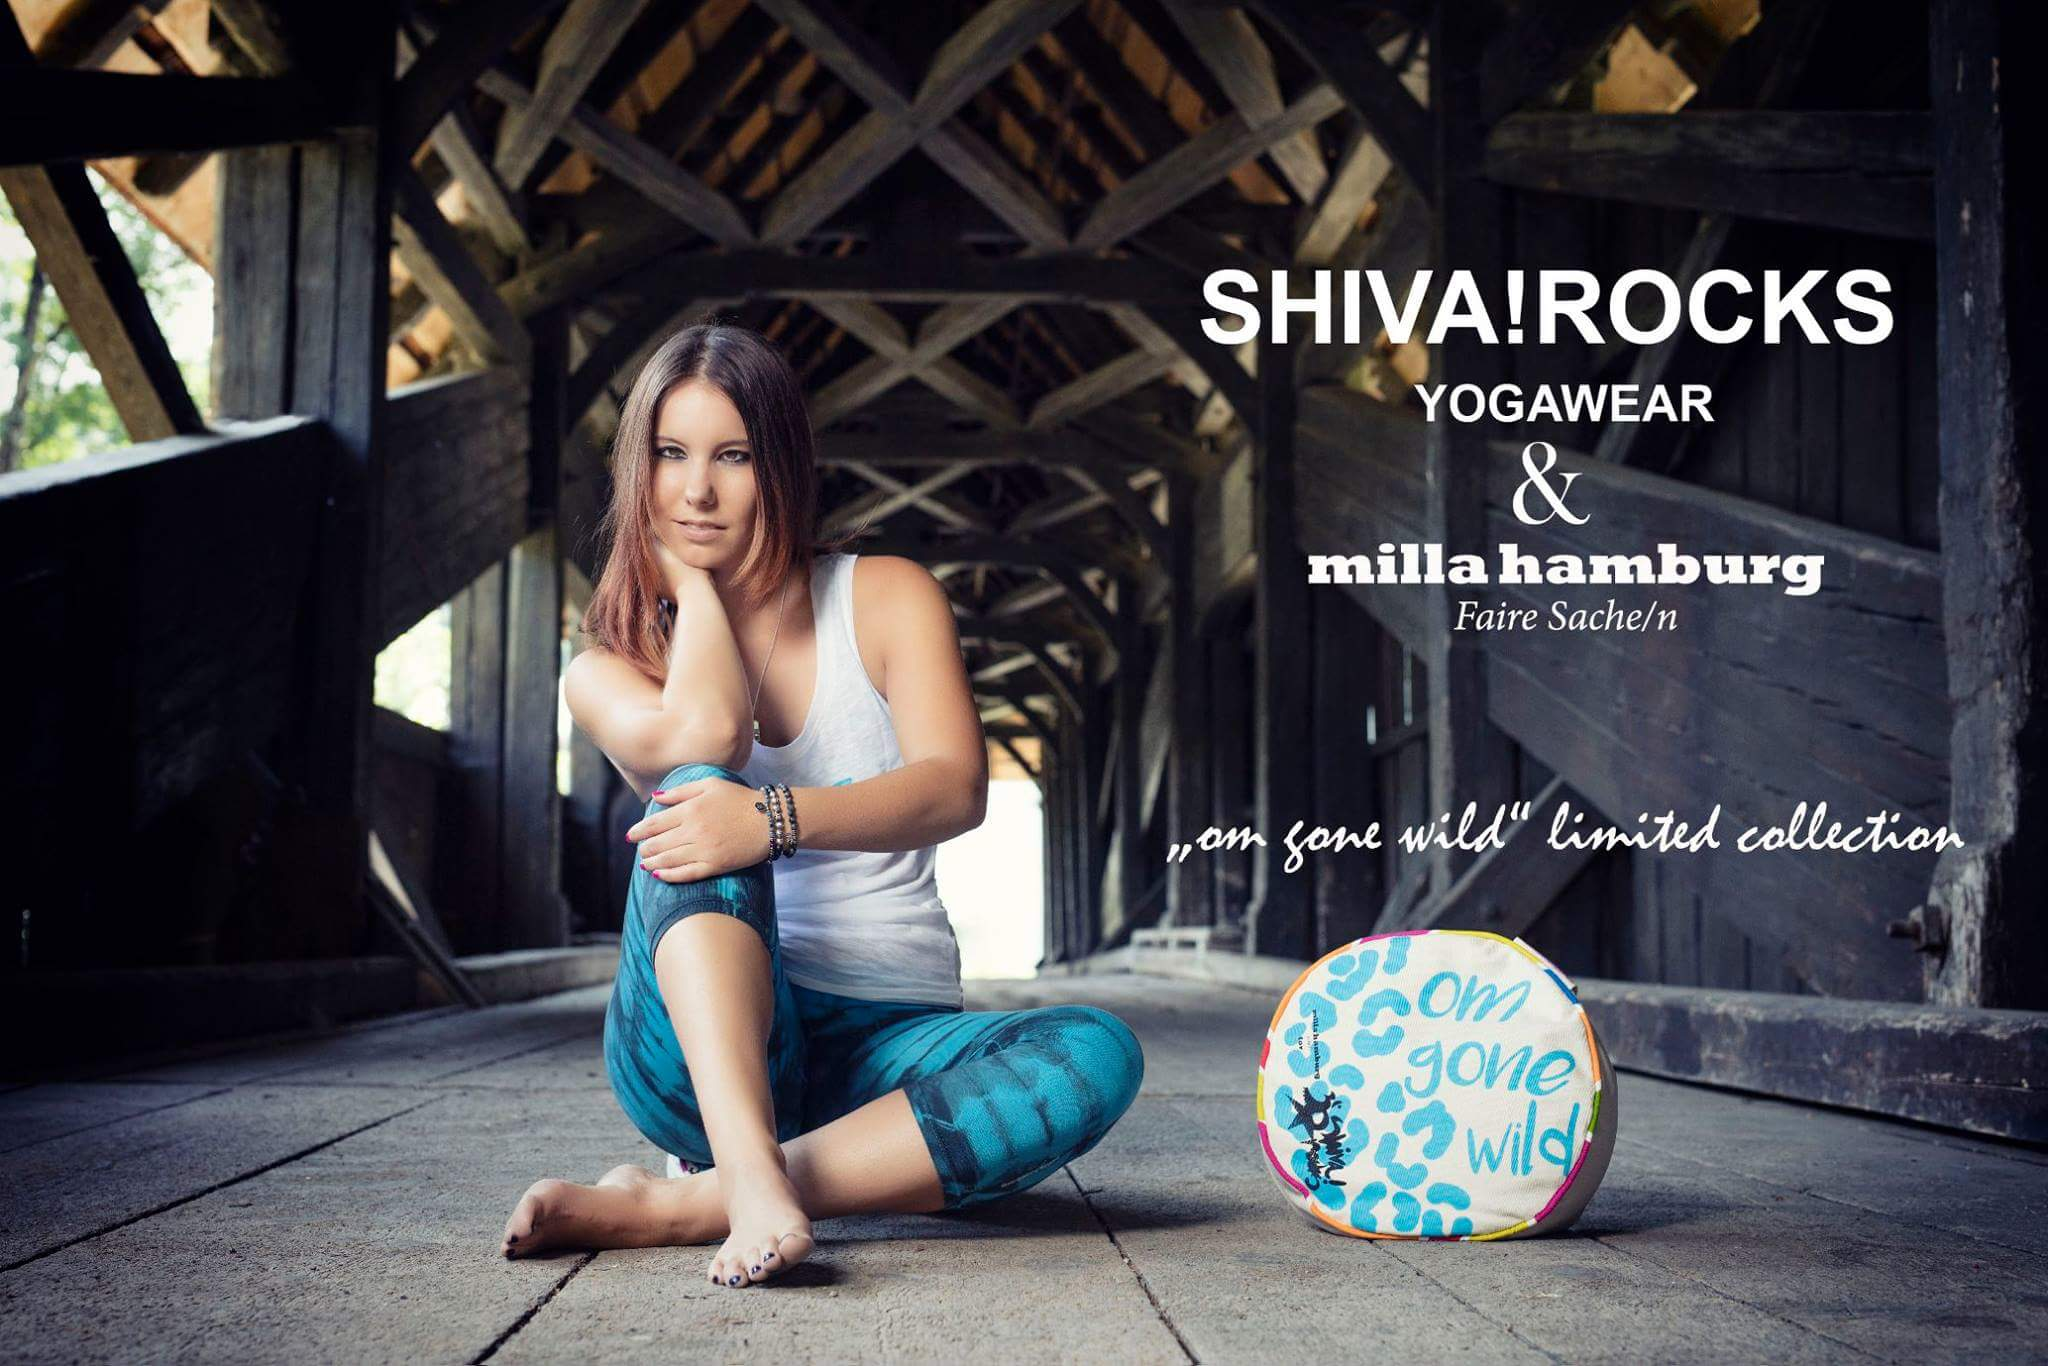 NEW— Launch der Shiva!rocks Yogawear & Millahamburg Collaboration